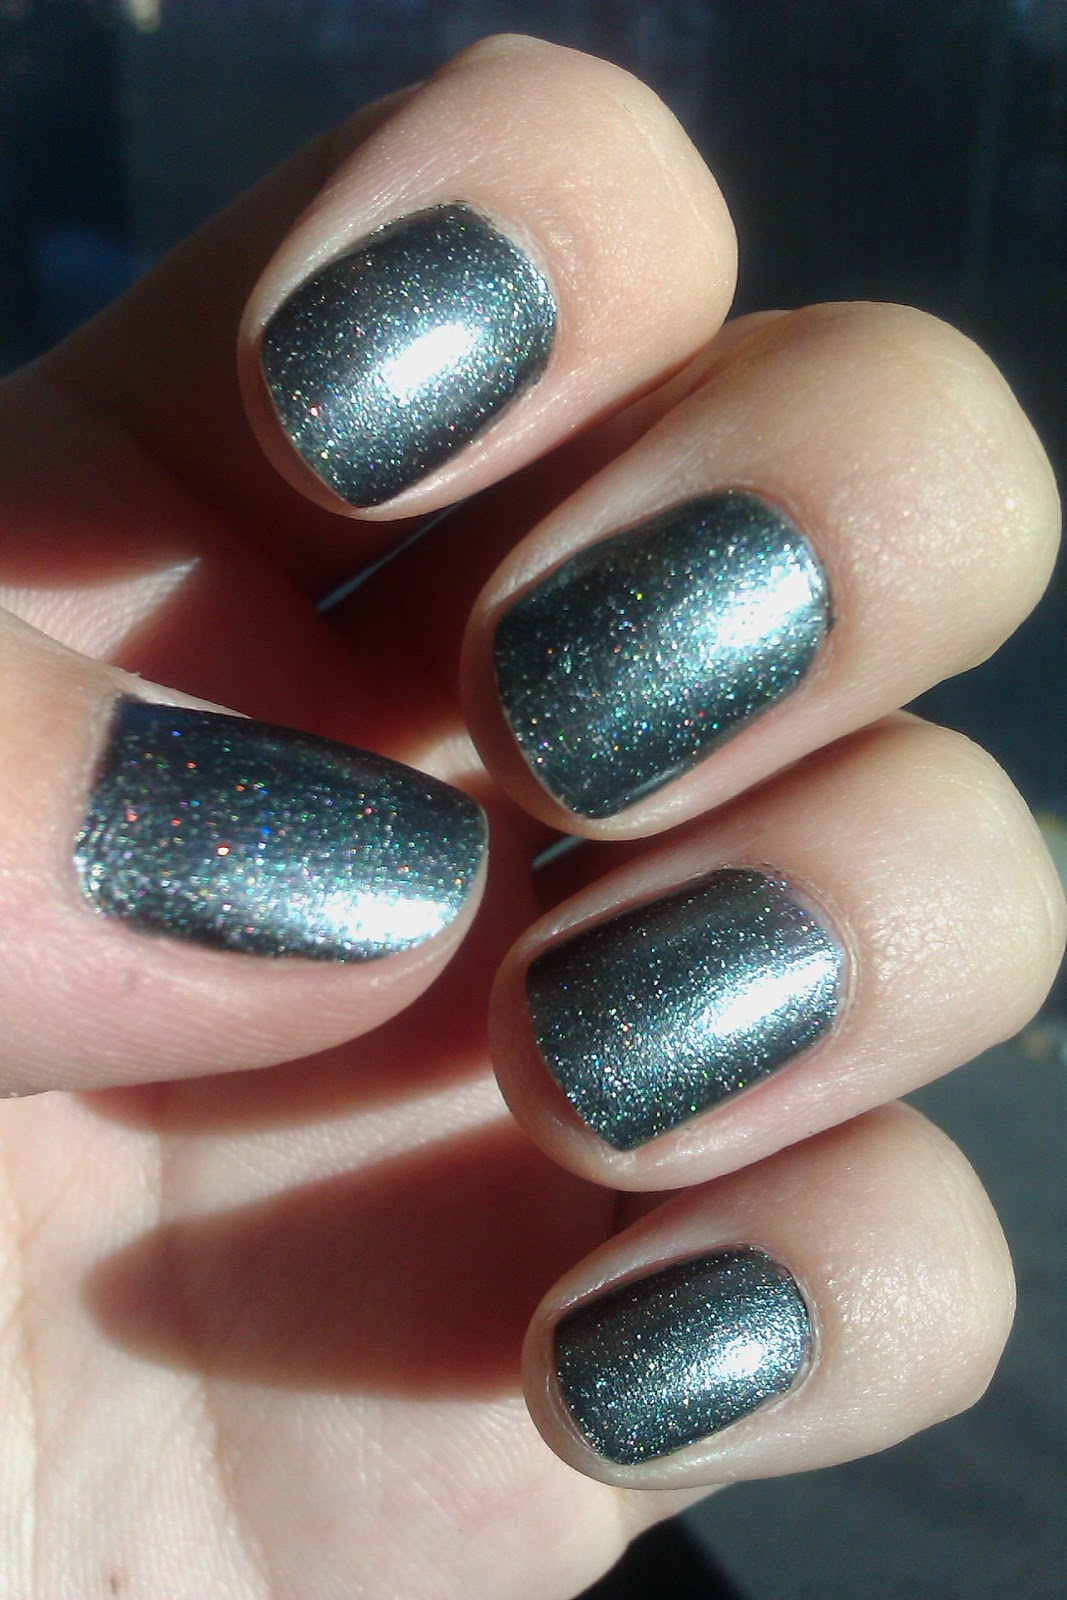 Chloe Beauty NYC: e.l.f. Nail Polish in Metal Madness (NOTW)